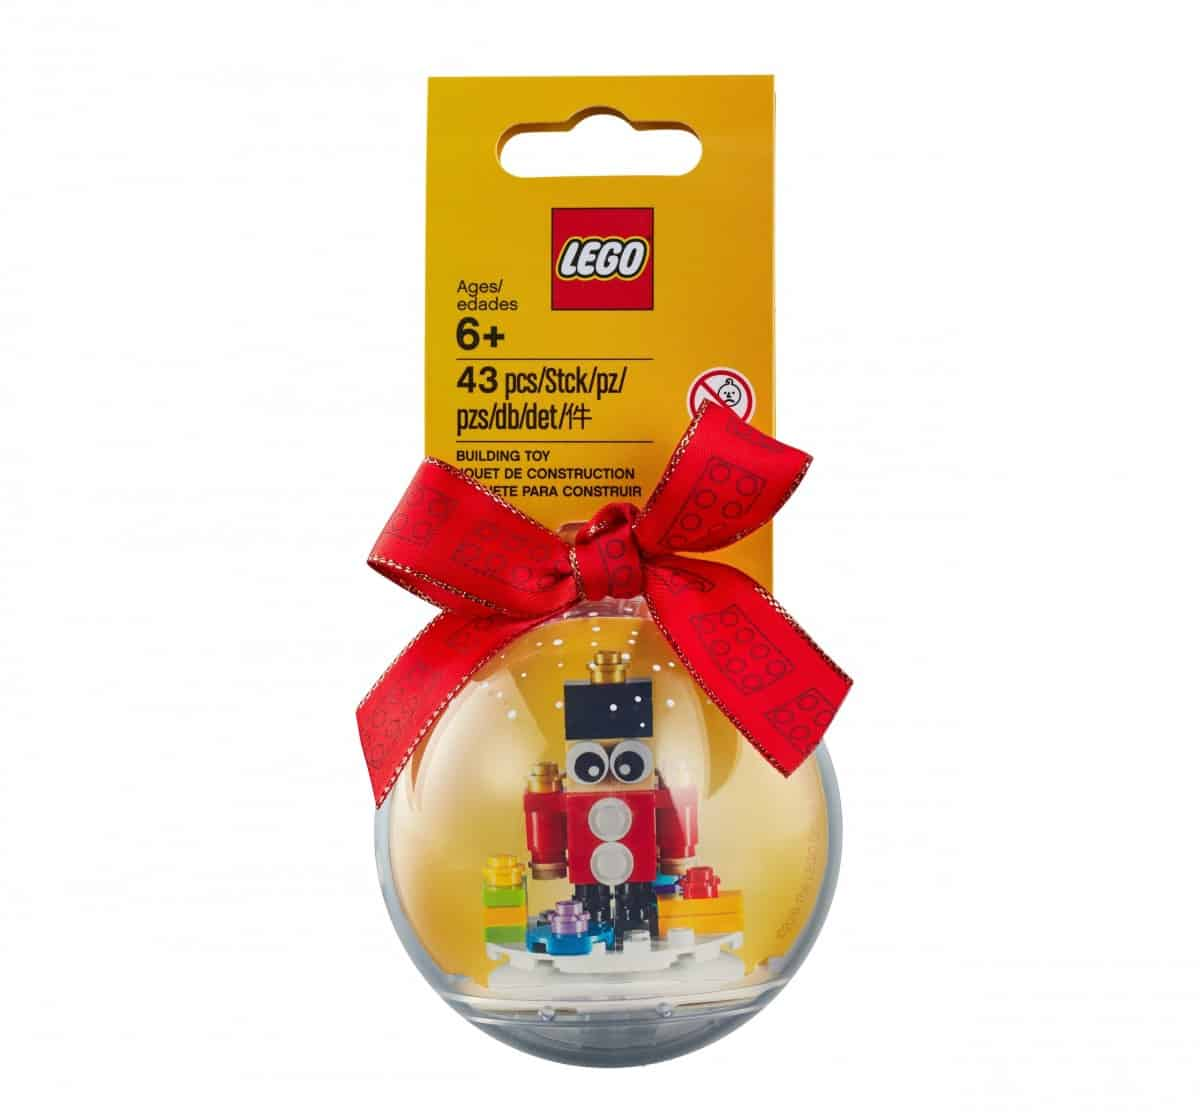 lego 853907 toy soldier ornament scaled